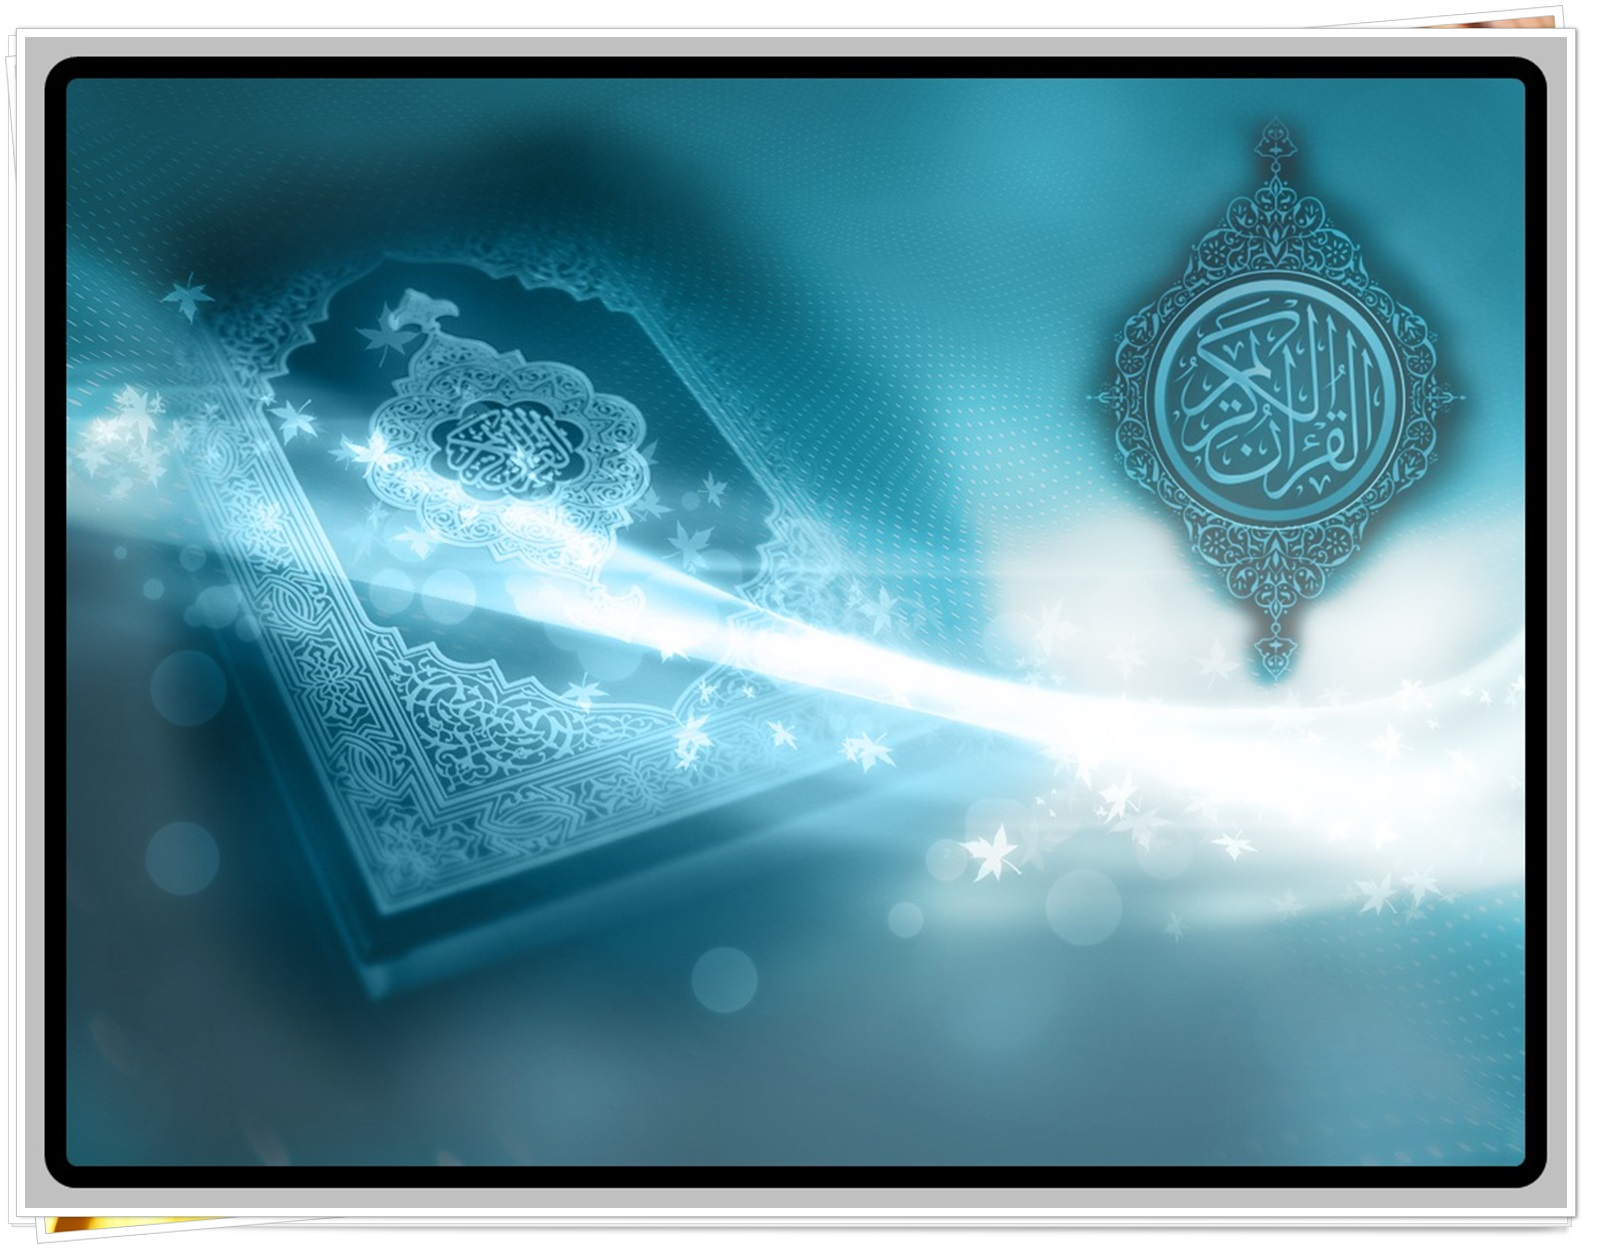 Download 9100 Koleksi Background Keren Islami Gratis Terbaru